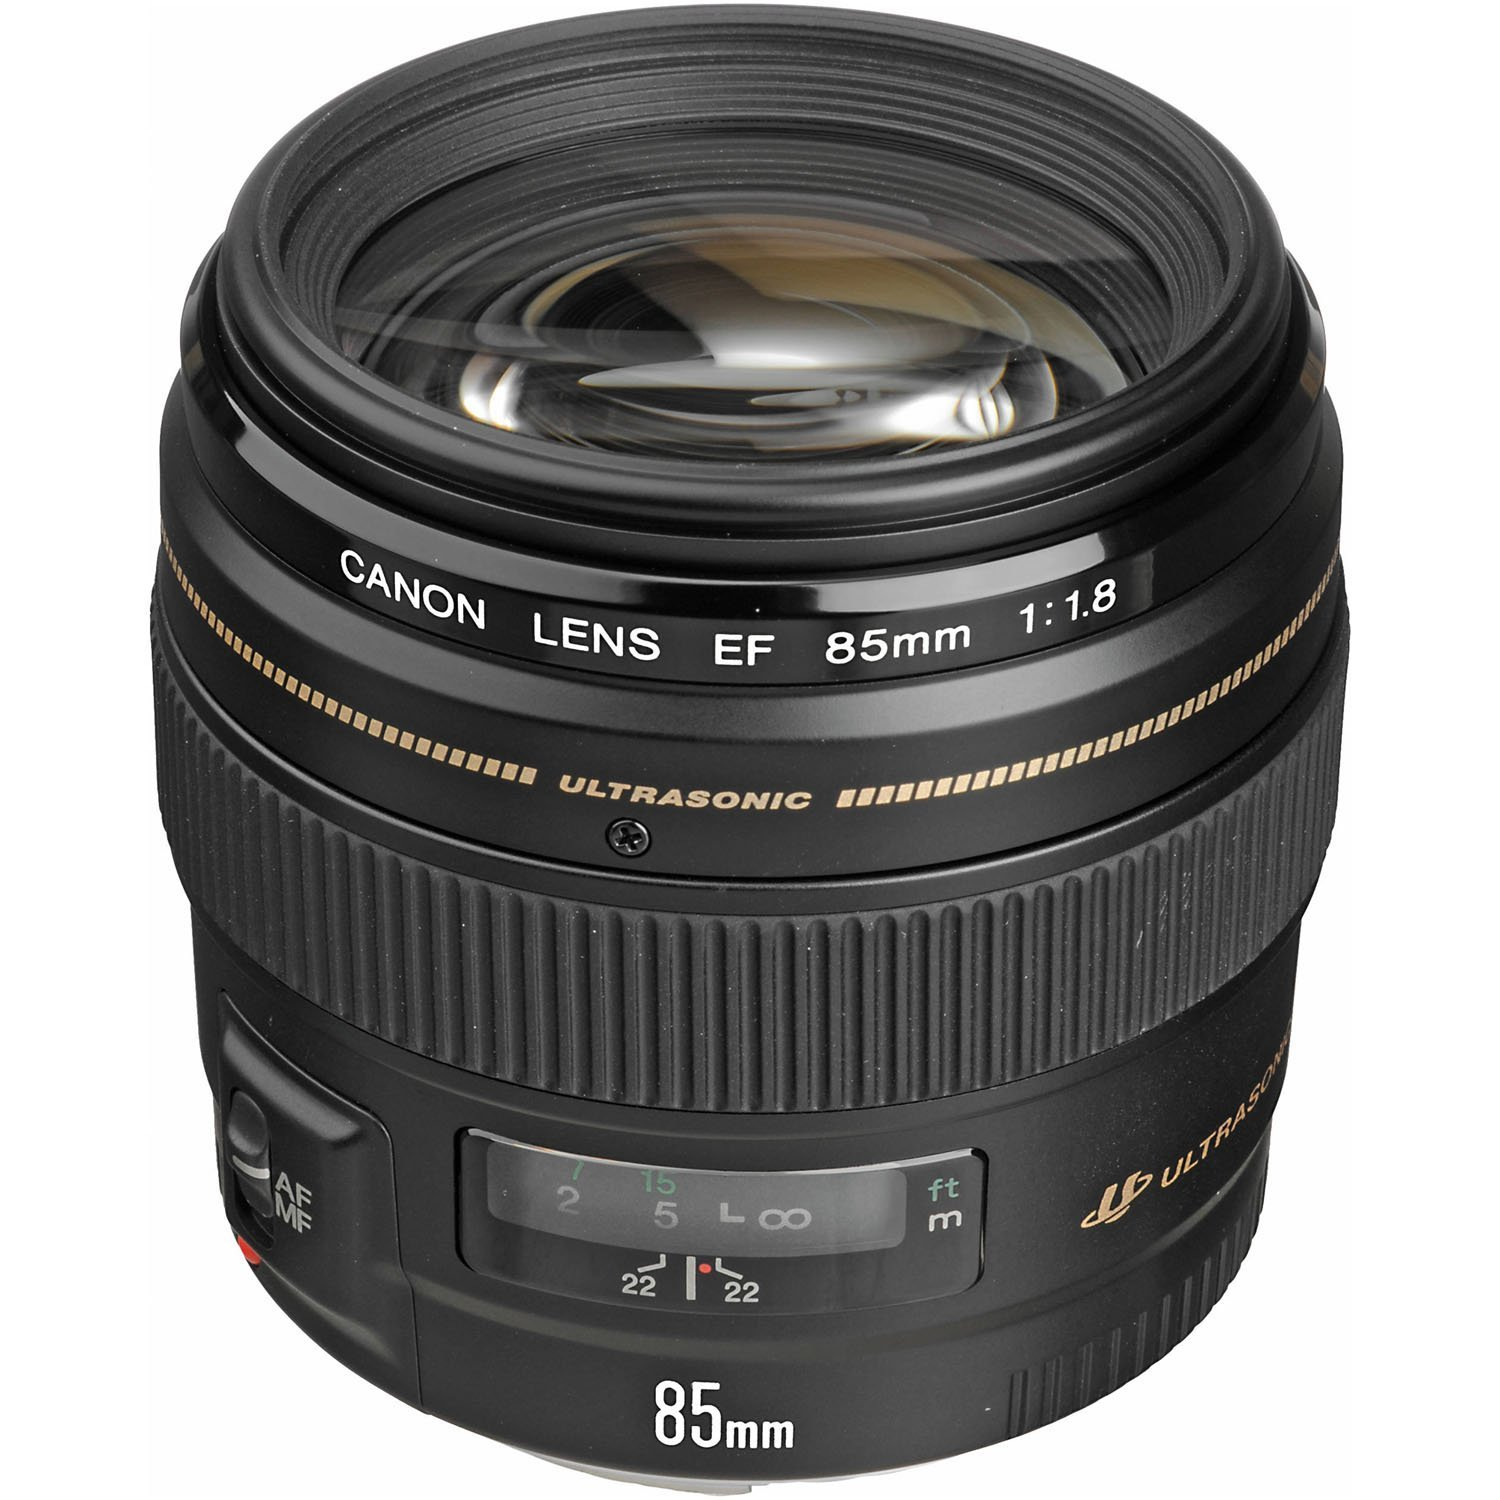 The Canon 85mm 1.8 USM